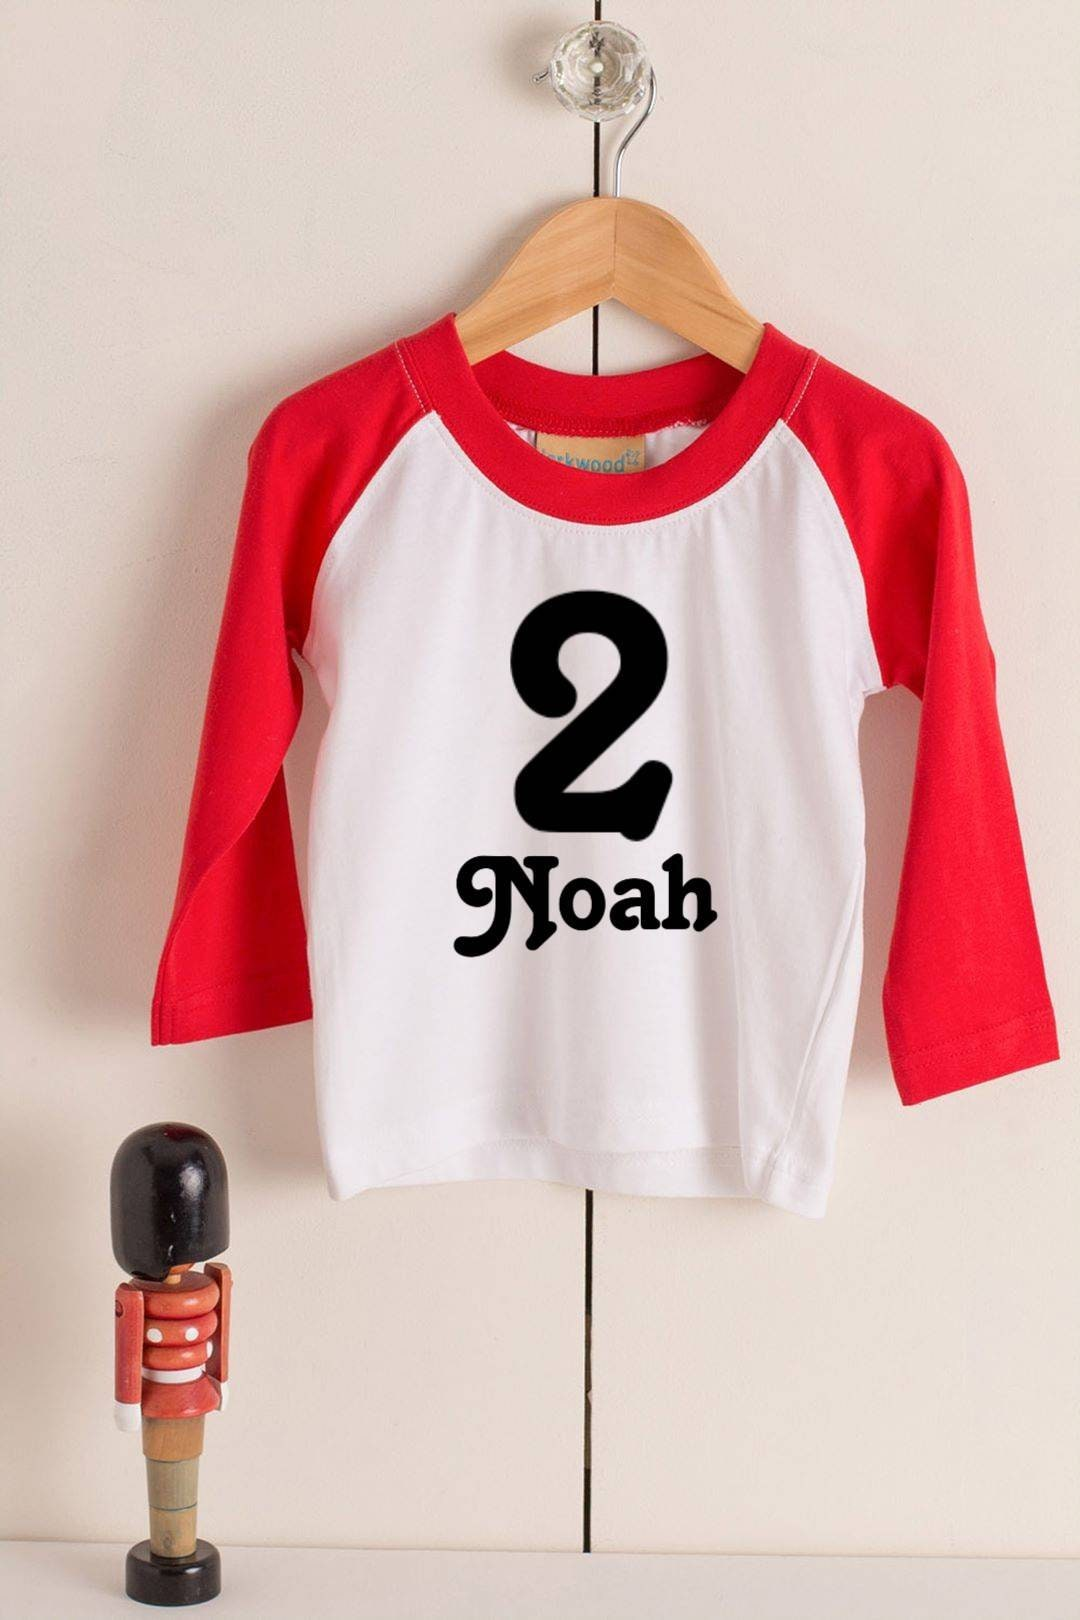 Boys Personalised Second Birthday T Shirt Long Sleeved Navy Red White Number Name Baseball Style 2nd Gift Cotton Cake Smash Photo Shoot